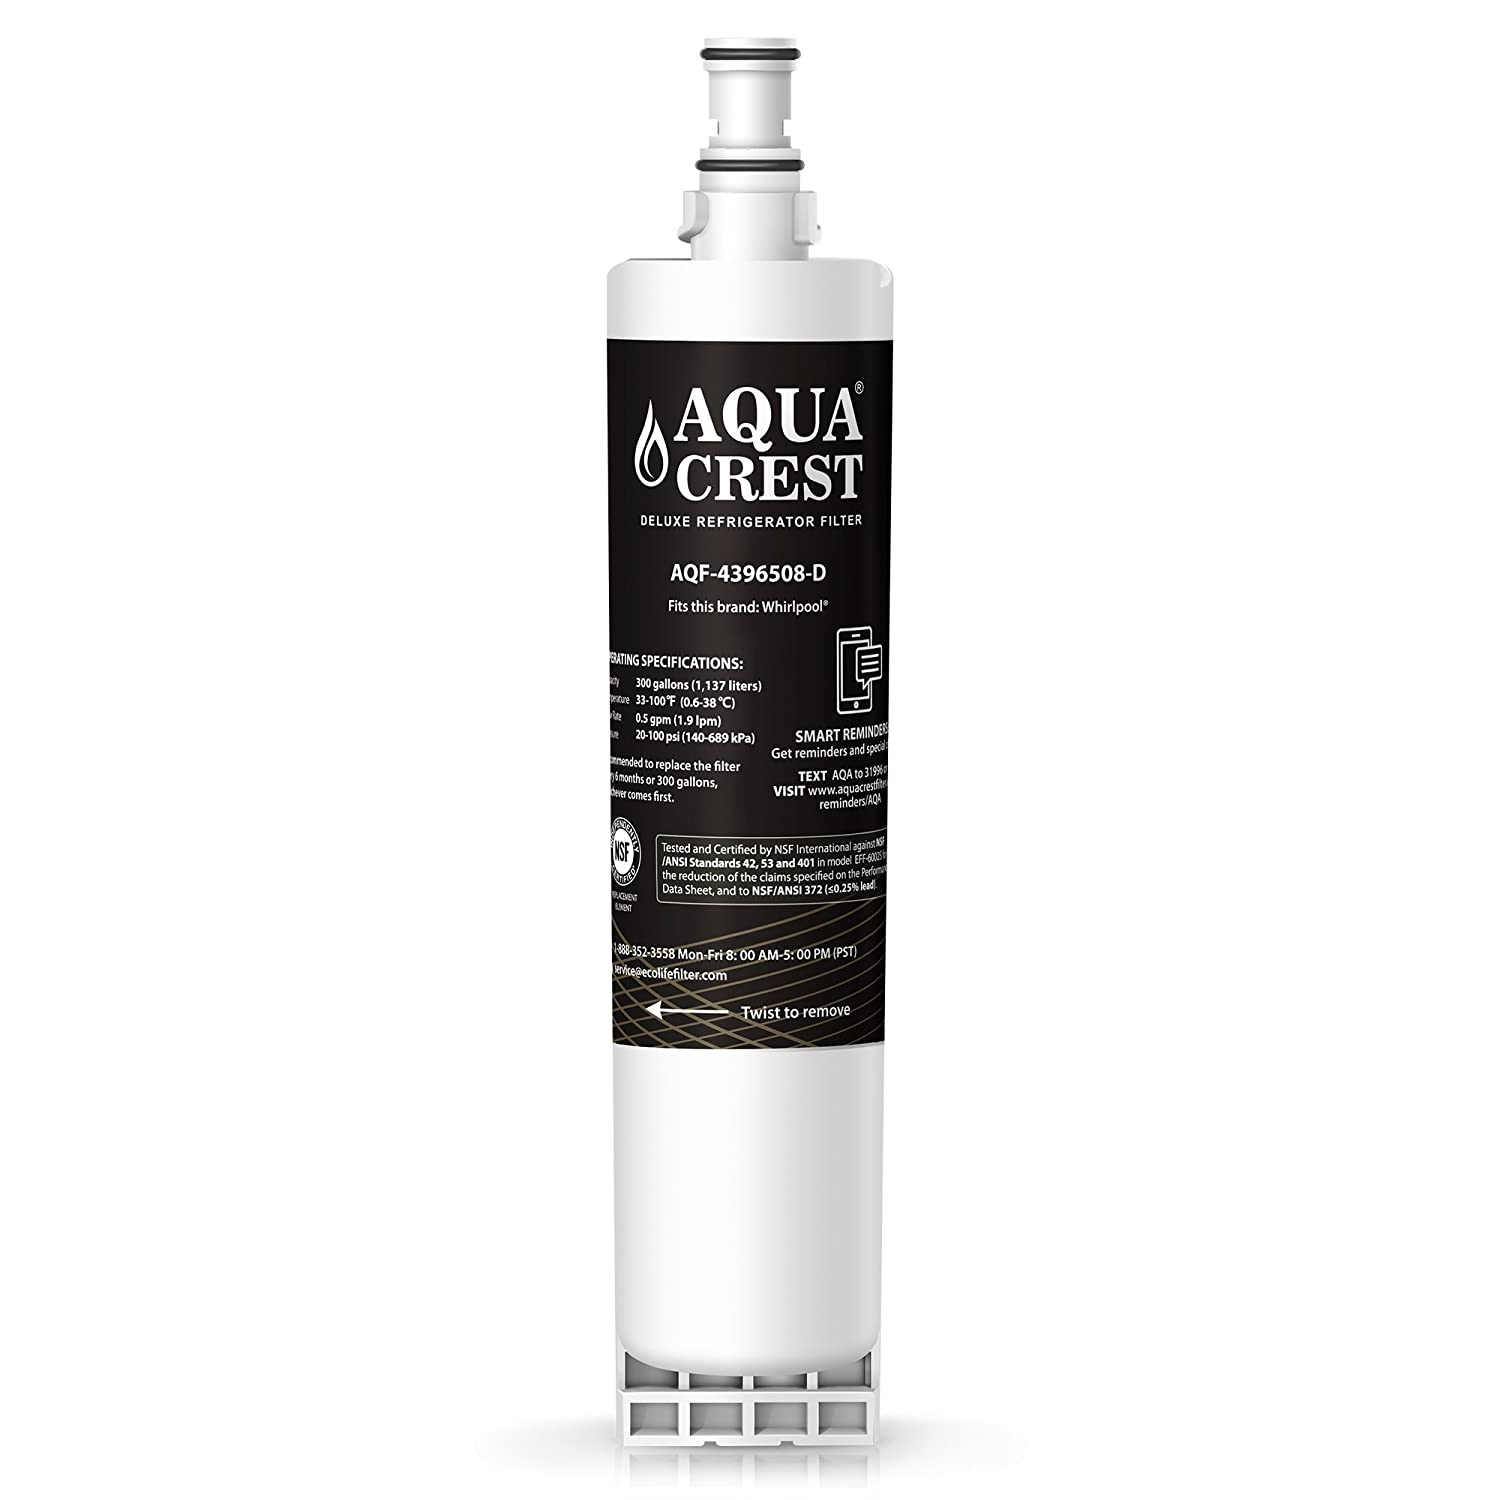 AQUACREST Replacement 4396508 NSF 401,53&42 Refrigerator Water Filter, Compatible with 4396508 4396510, Filter 5, 46-9010, PUR W10186668